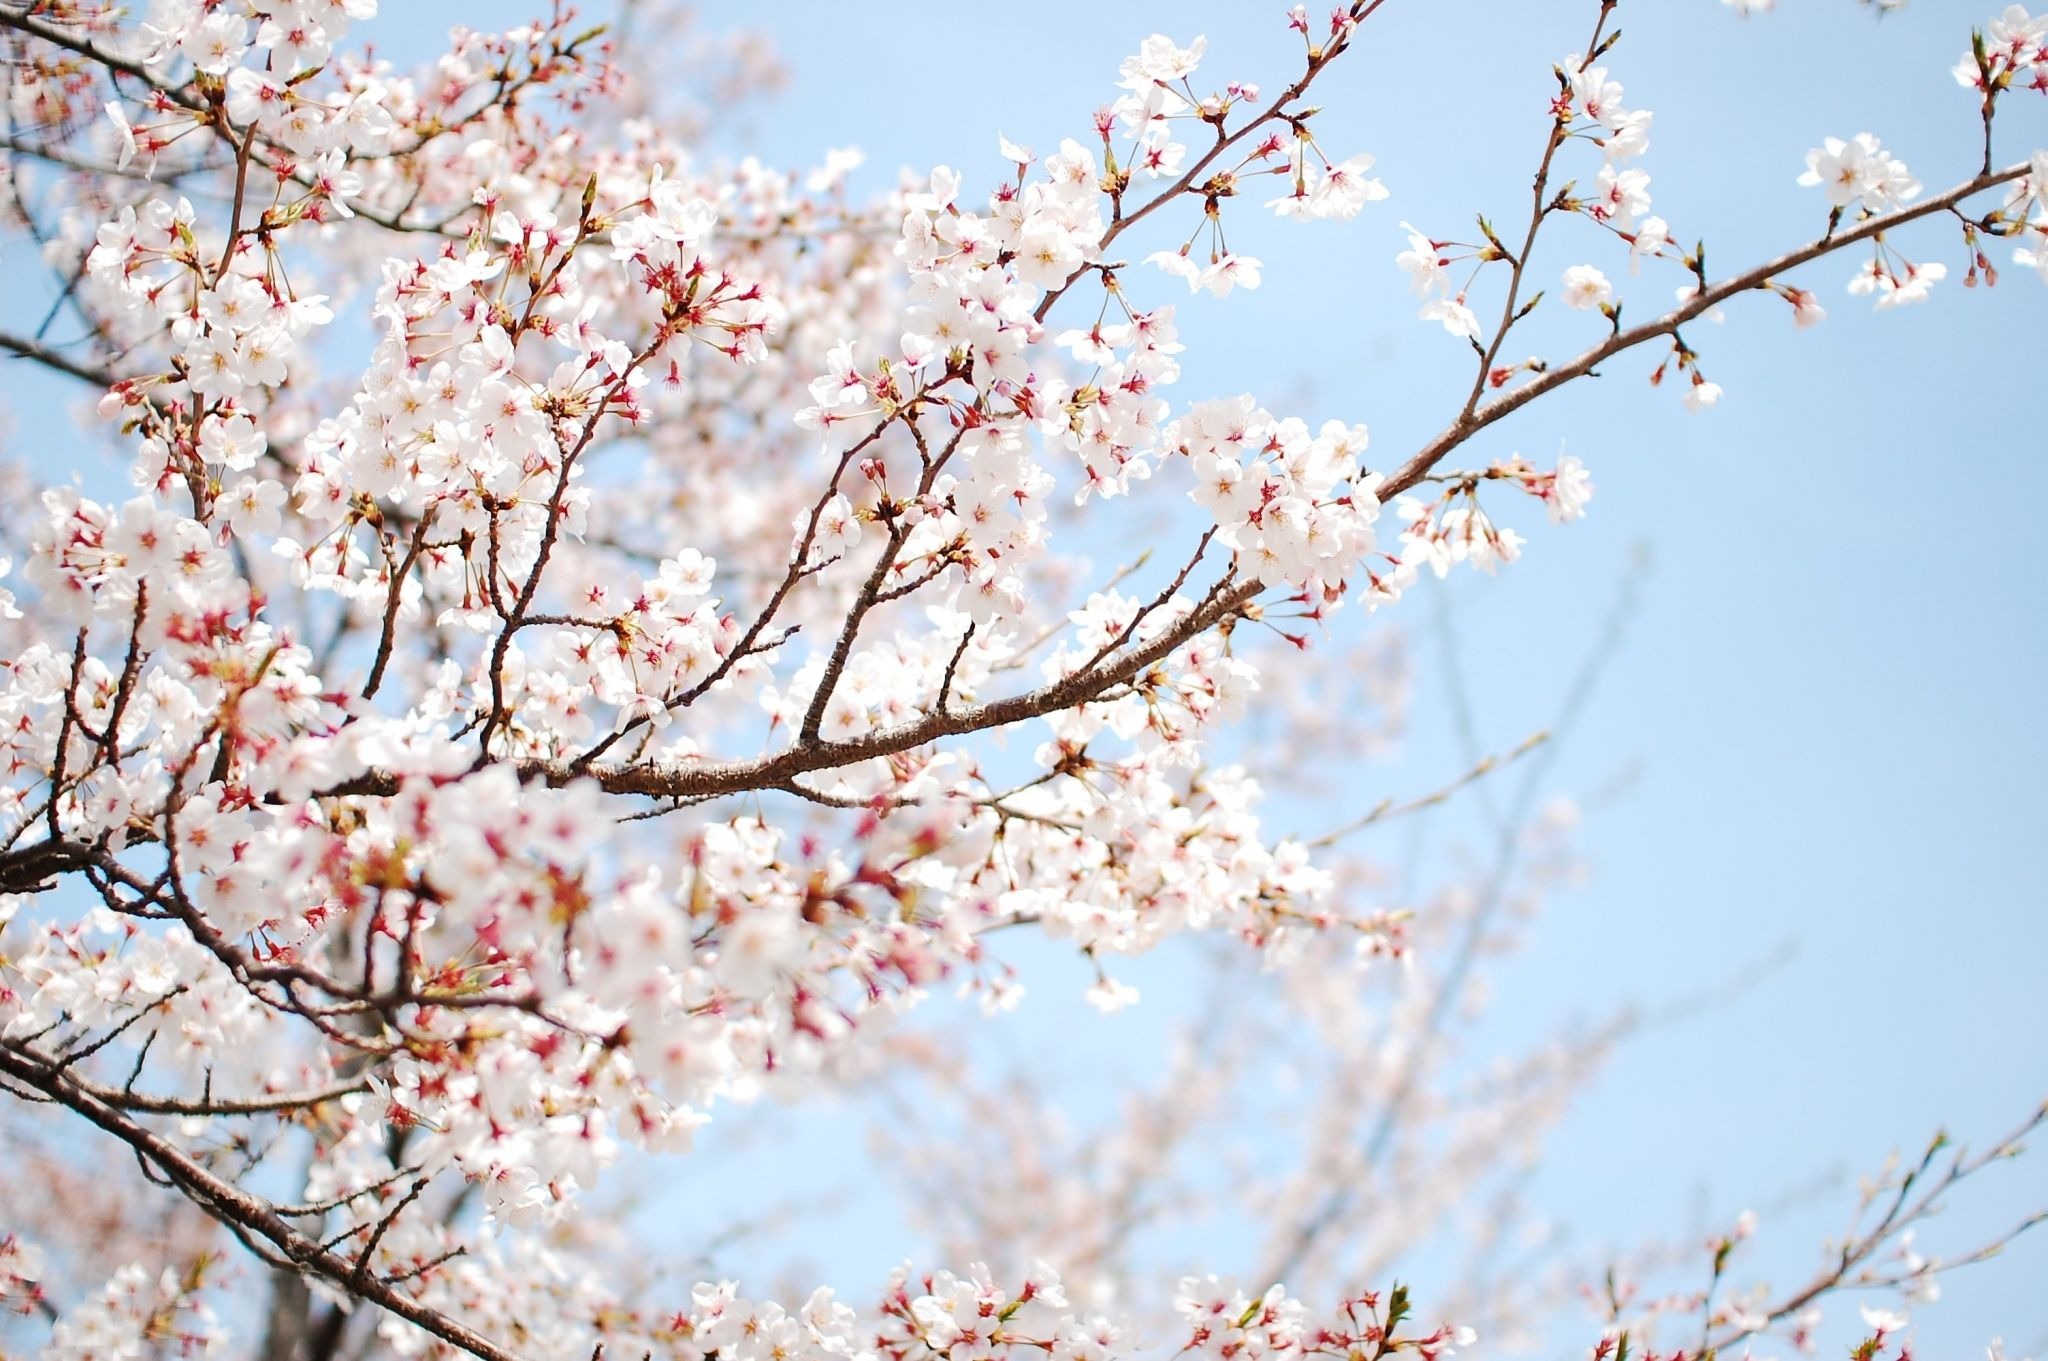 Cherry Blossom Hd Widescreen Wallpapers For Laptop Cherry Blossom Background Cherry Blossom Wallpaper Cherry Blossom Pictures